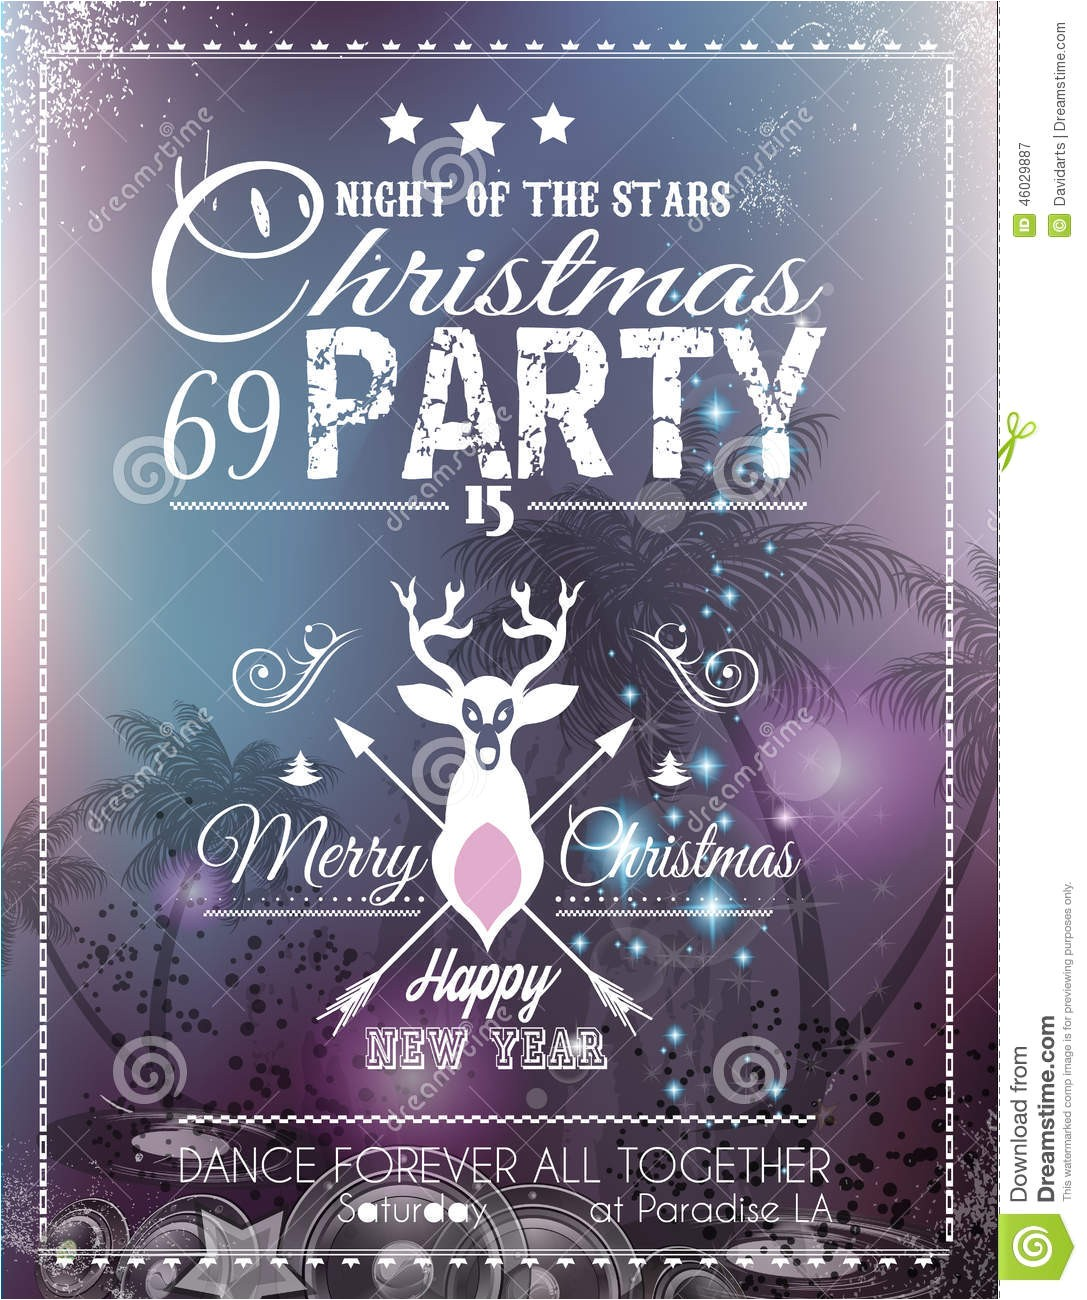 stock illustration christmas party flyer club disco events ideal musical themed posters invitation covers new year s eve discotheque image46029887